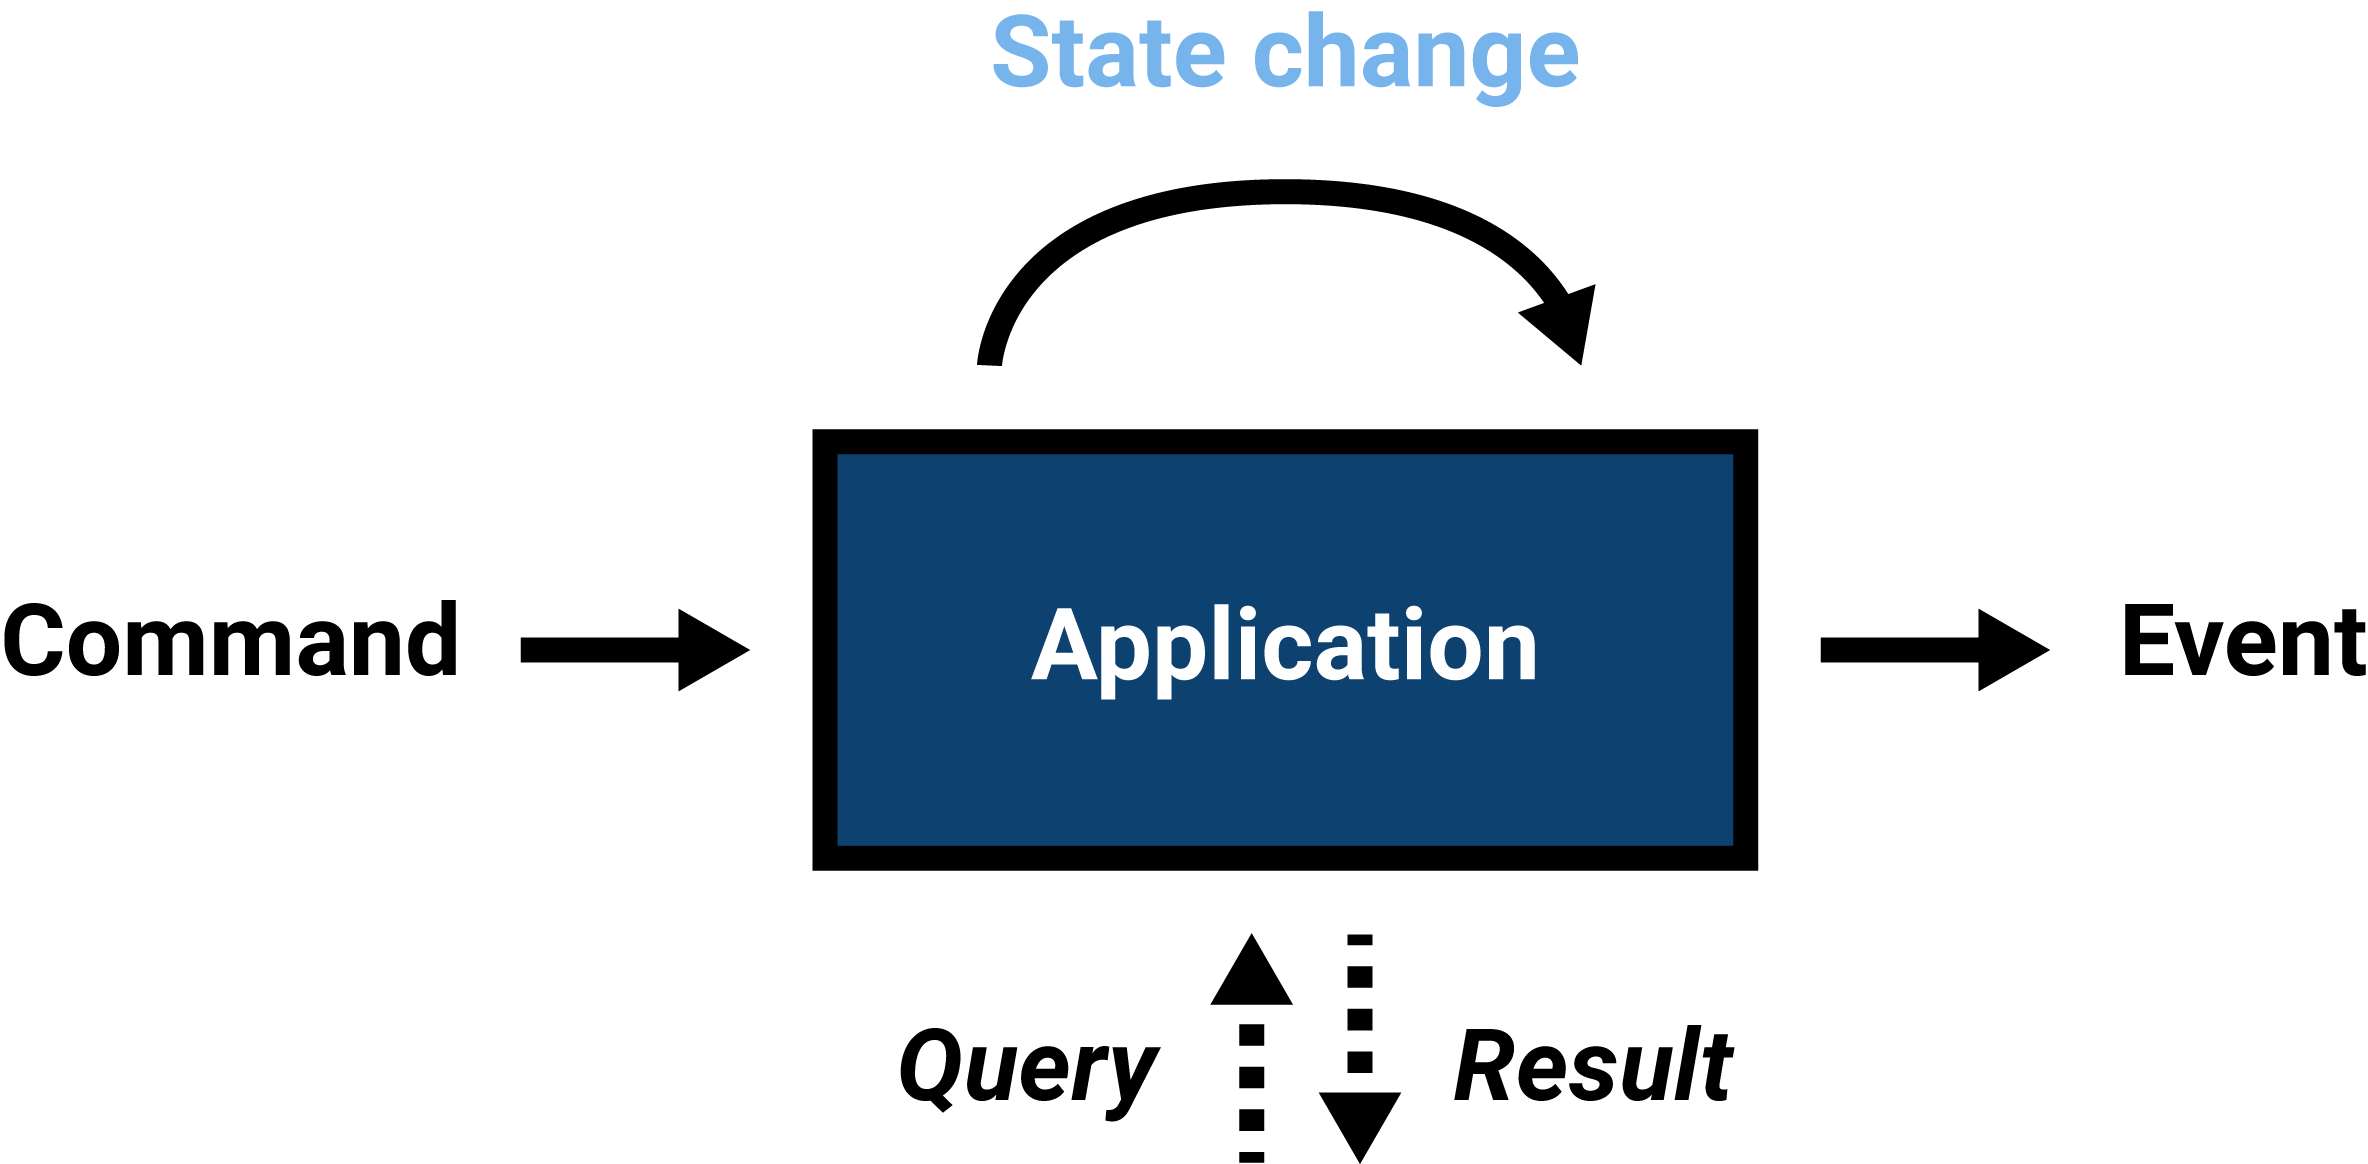 Commands can result in changes in application state,  which can cause events to be emitted. Queries are requests regarding current state.